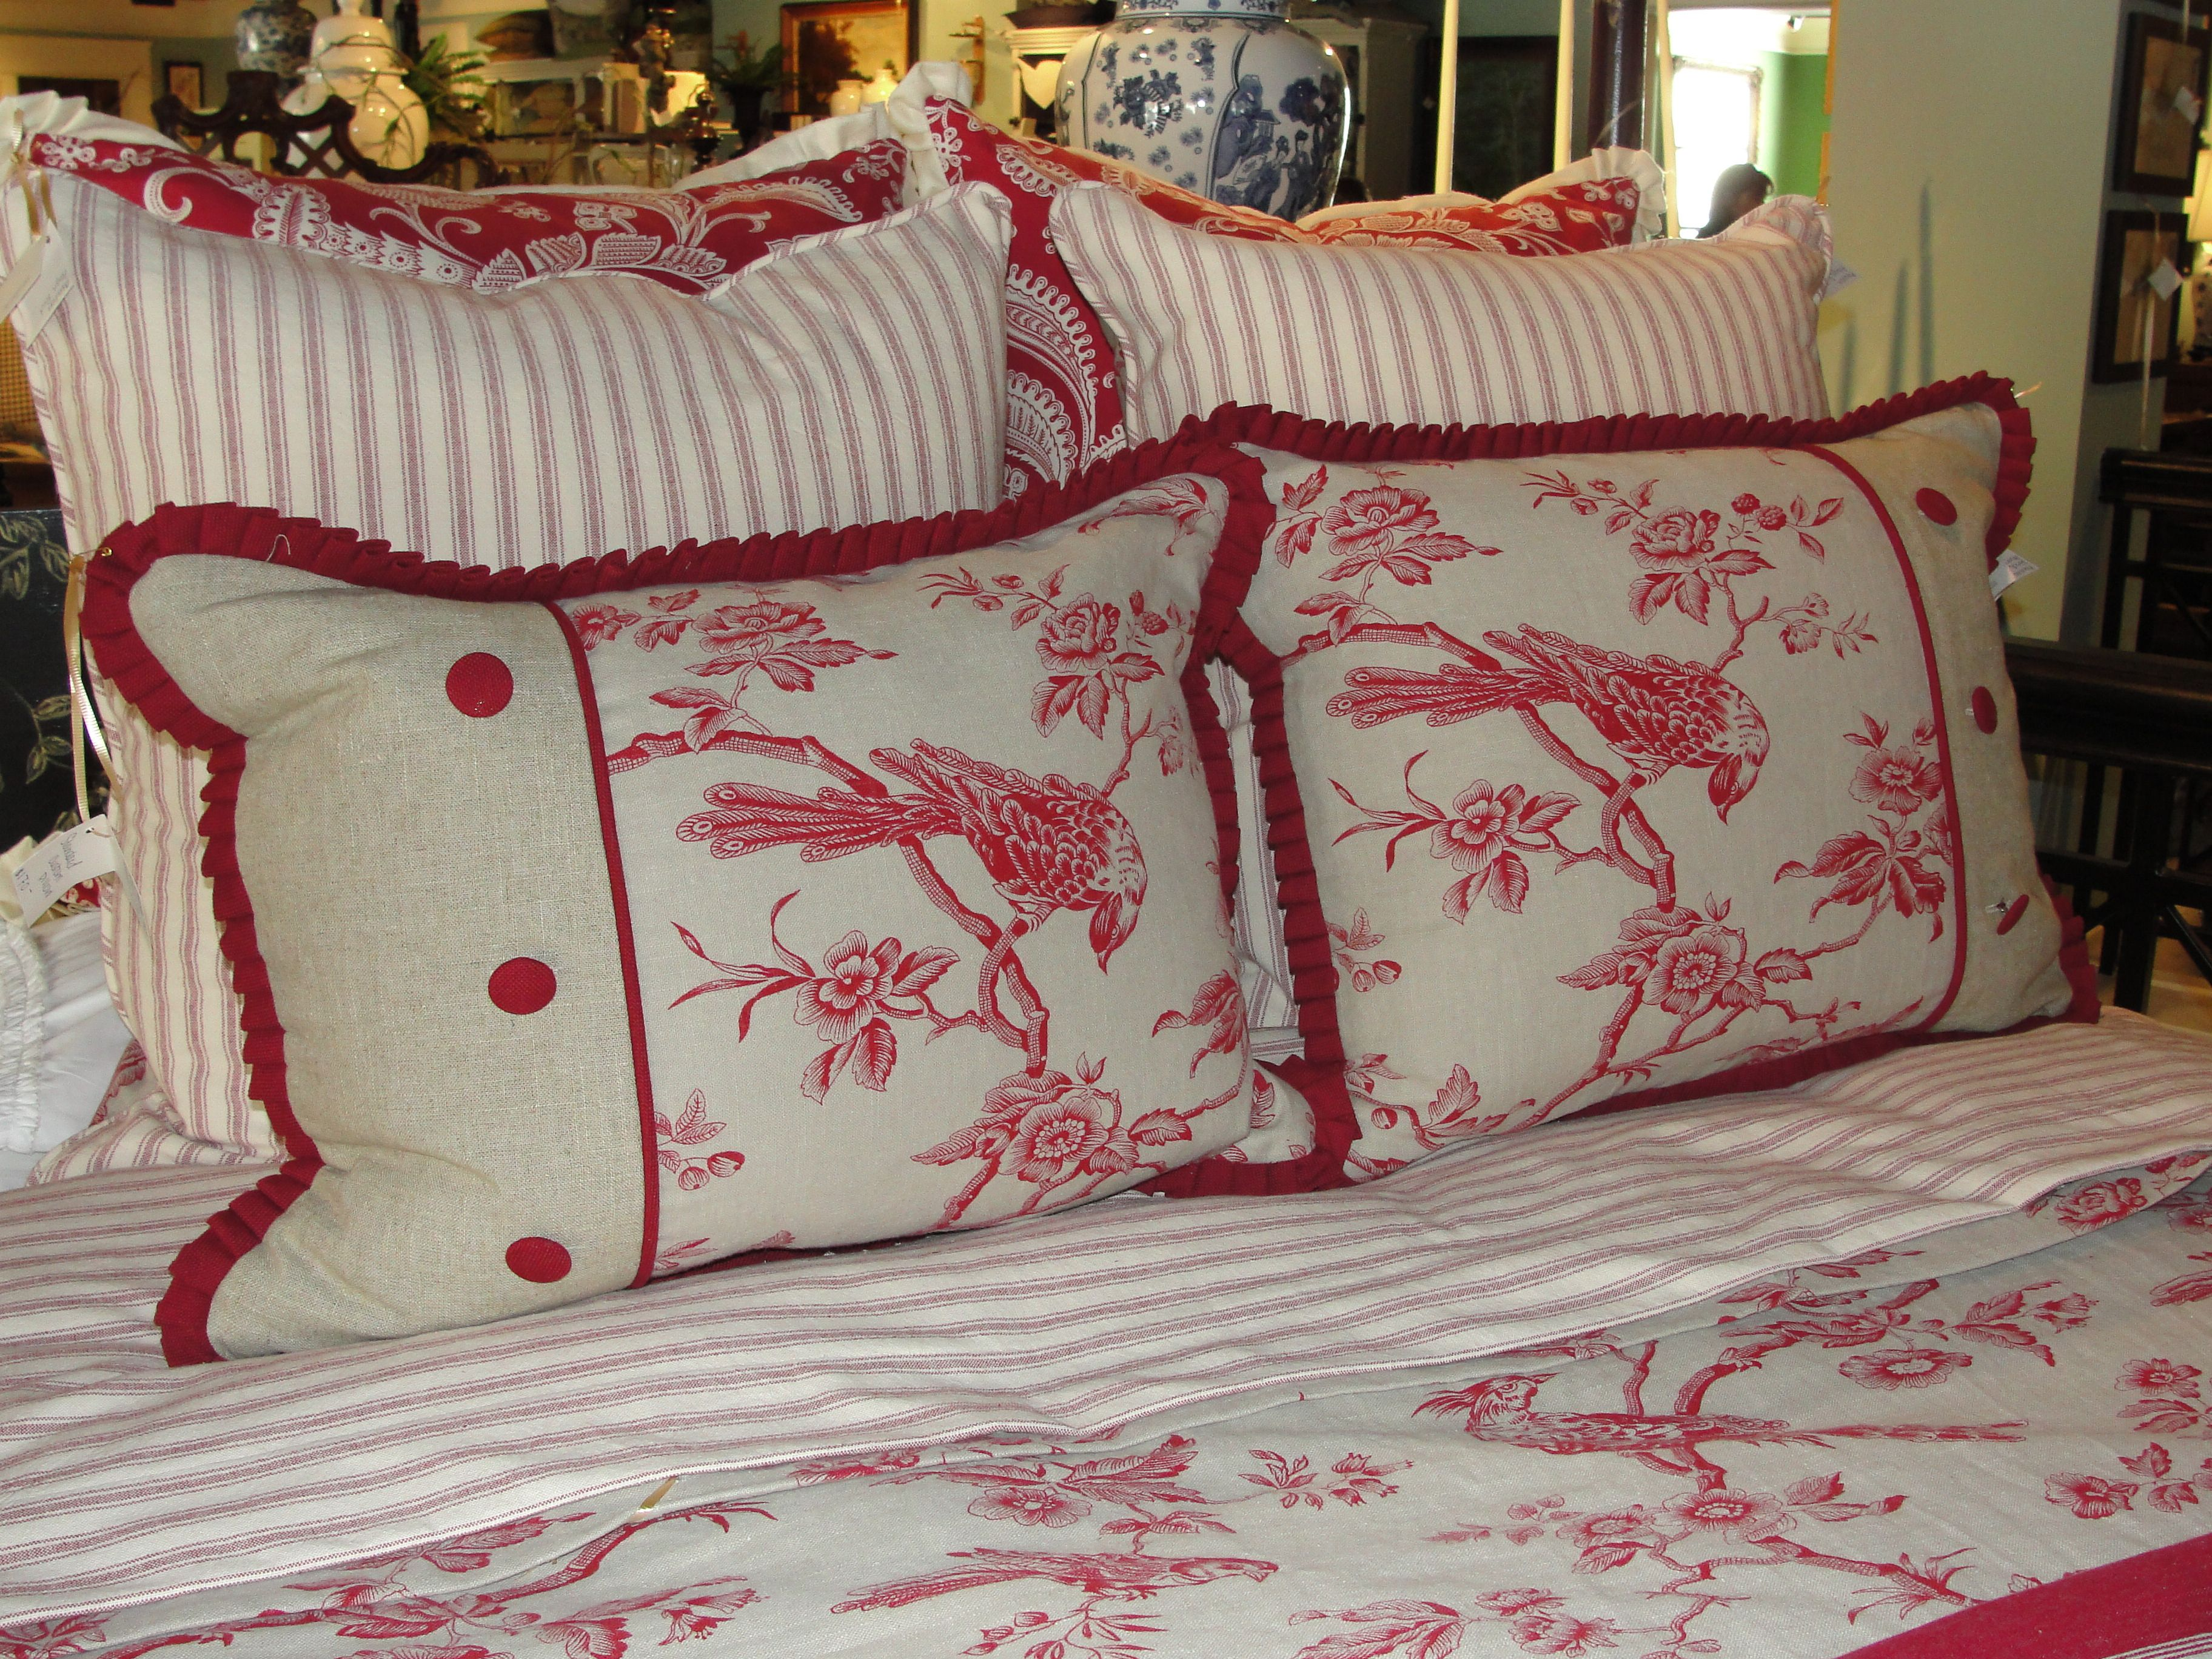 Bedroom Decorating Ideas Totally Toile: The Amazing Team Of Bedding Designers At